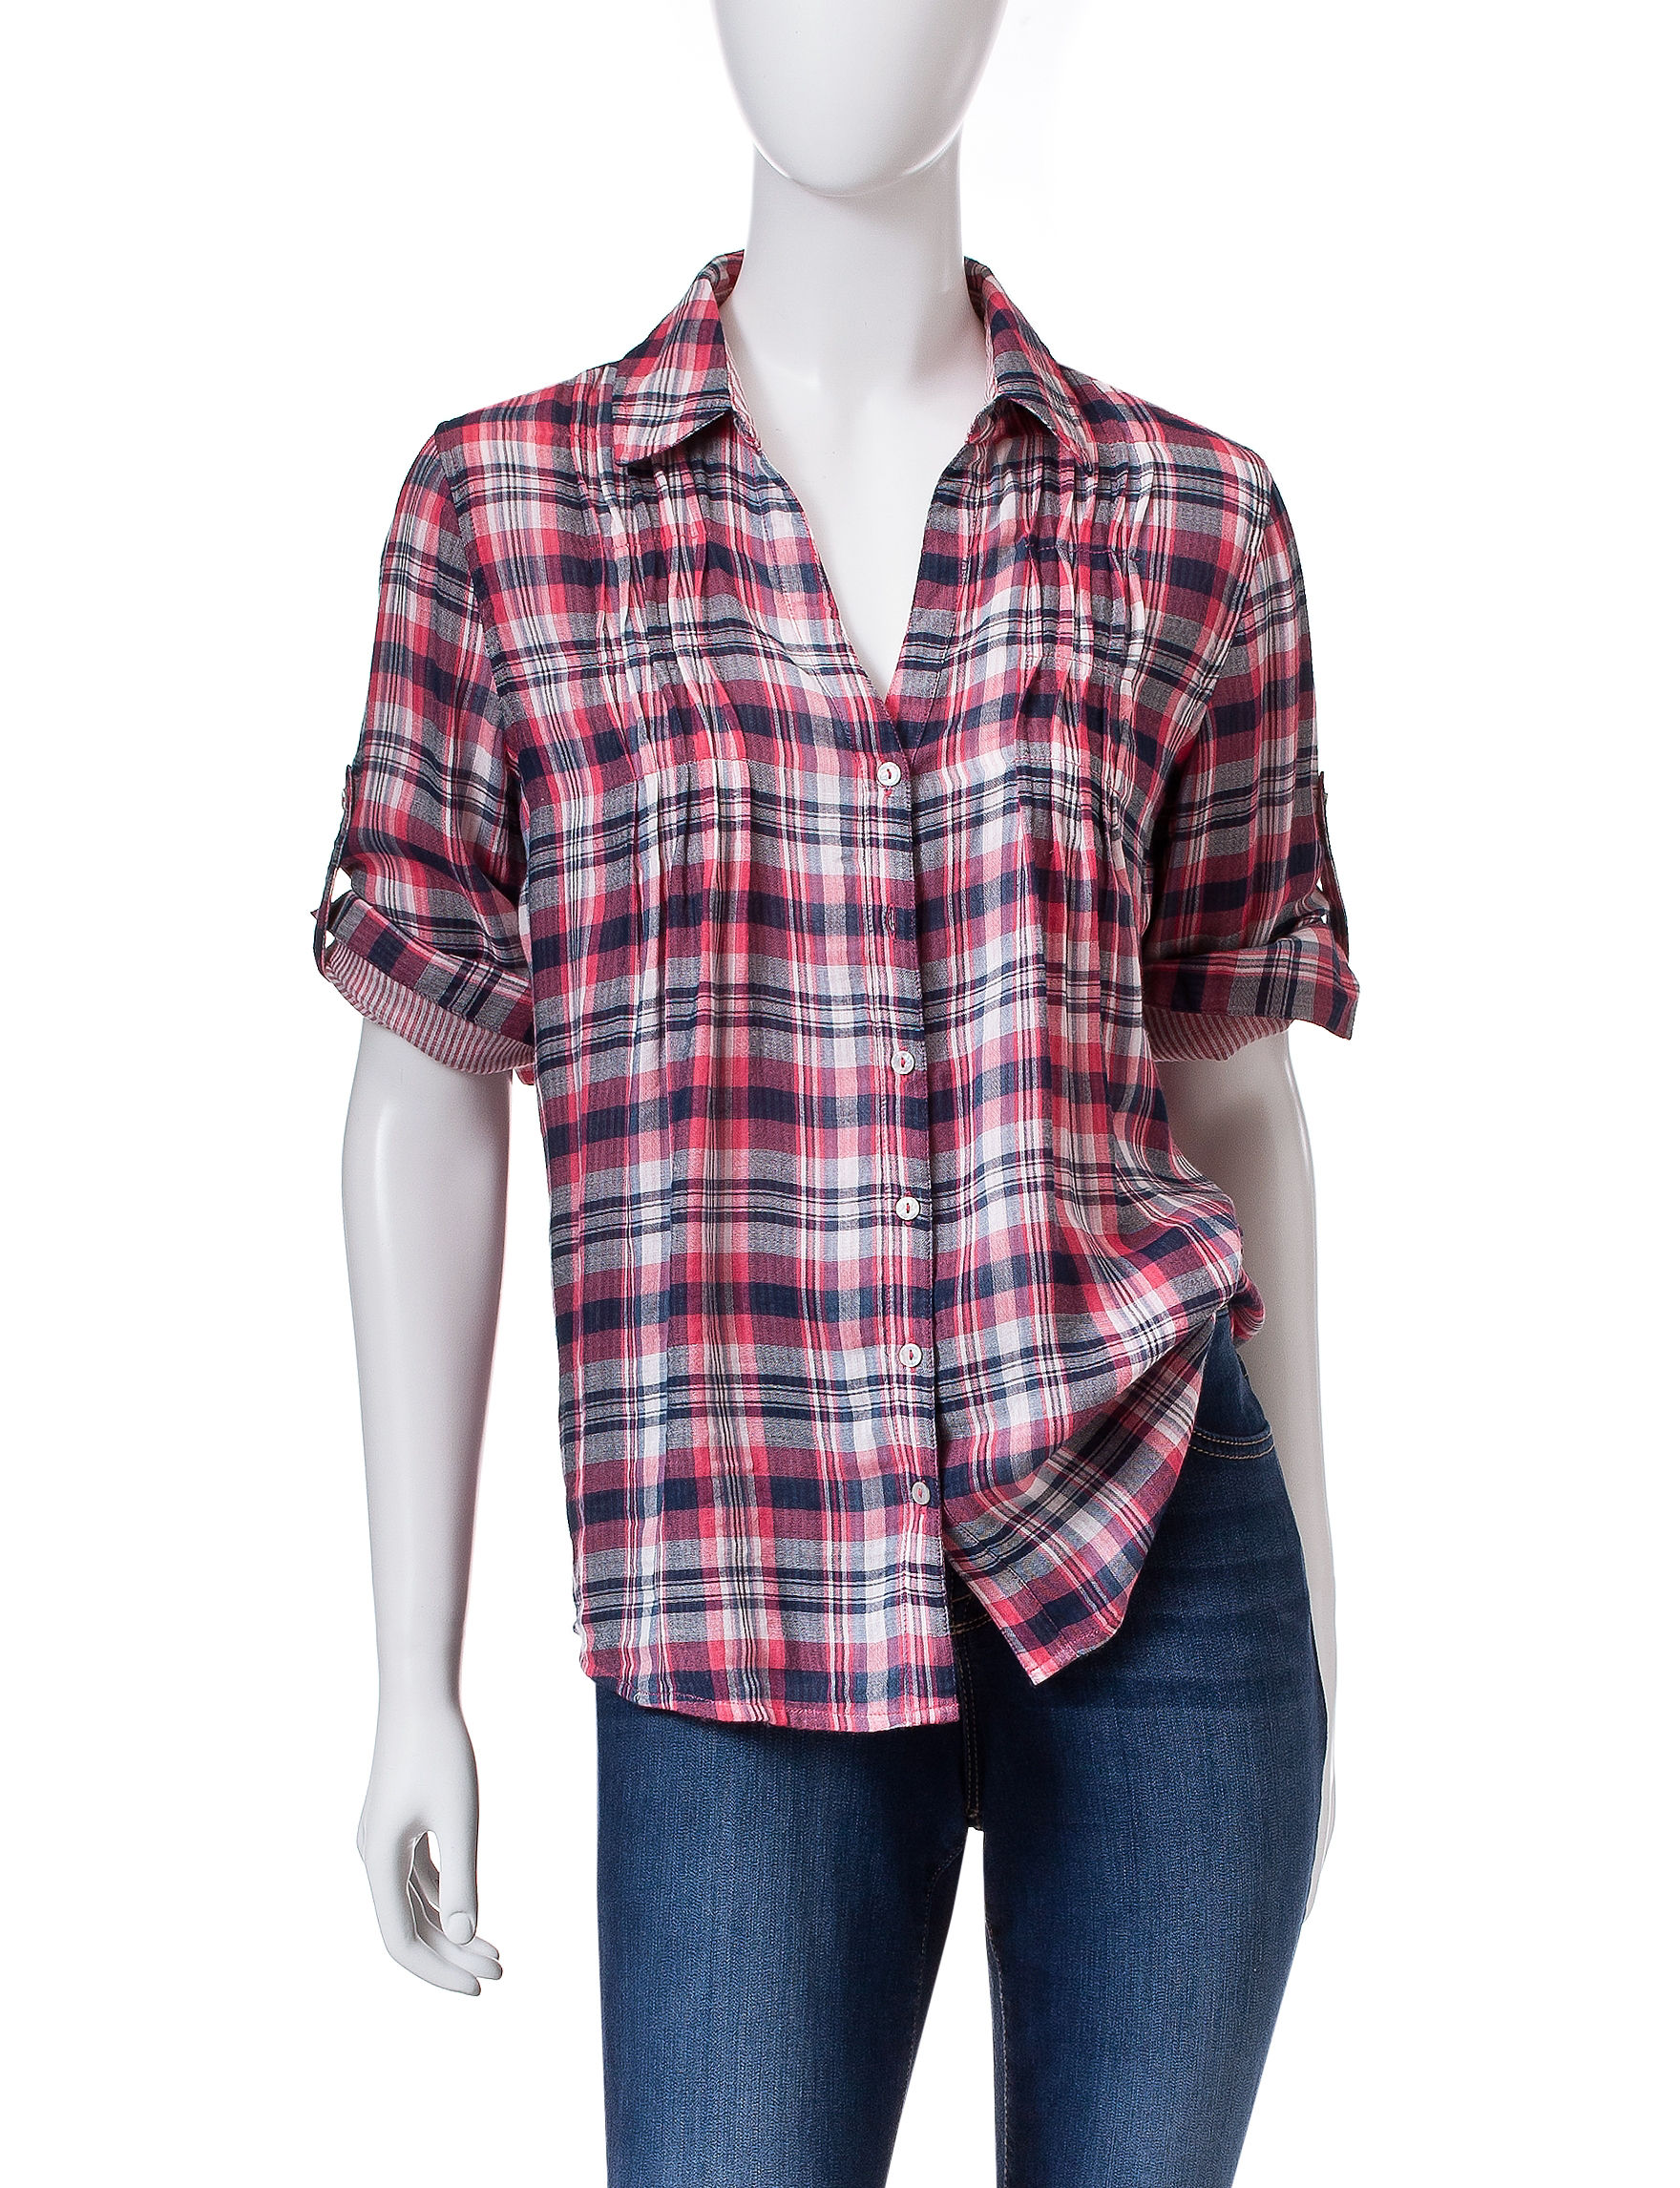 Vintage America Blues Red Plaid Shirts & Blouses